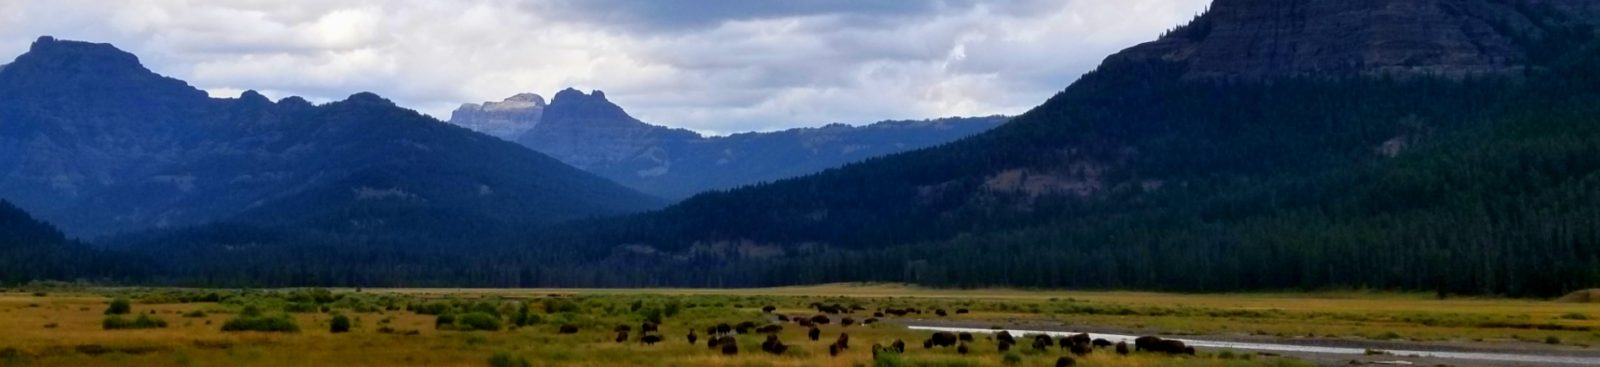 Lamar Valley Top 10 Things to Do in Yellowstone